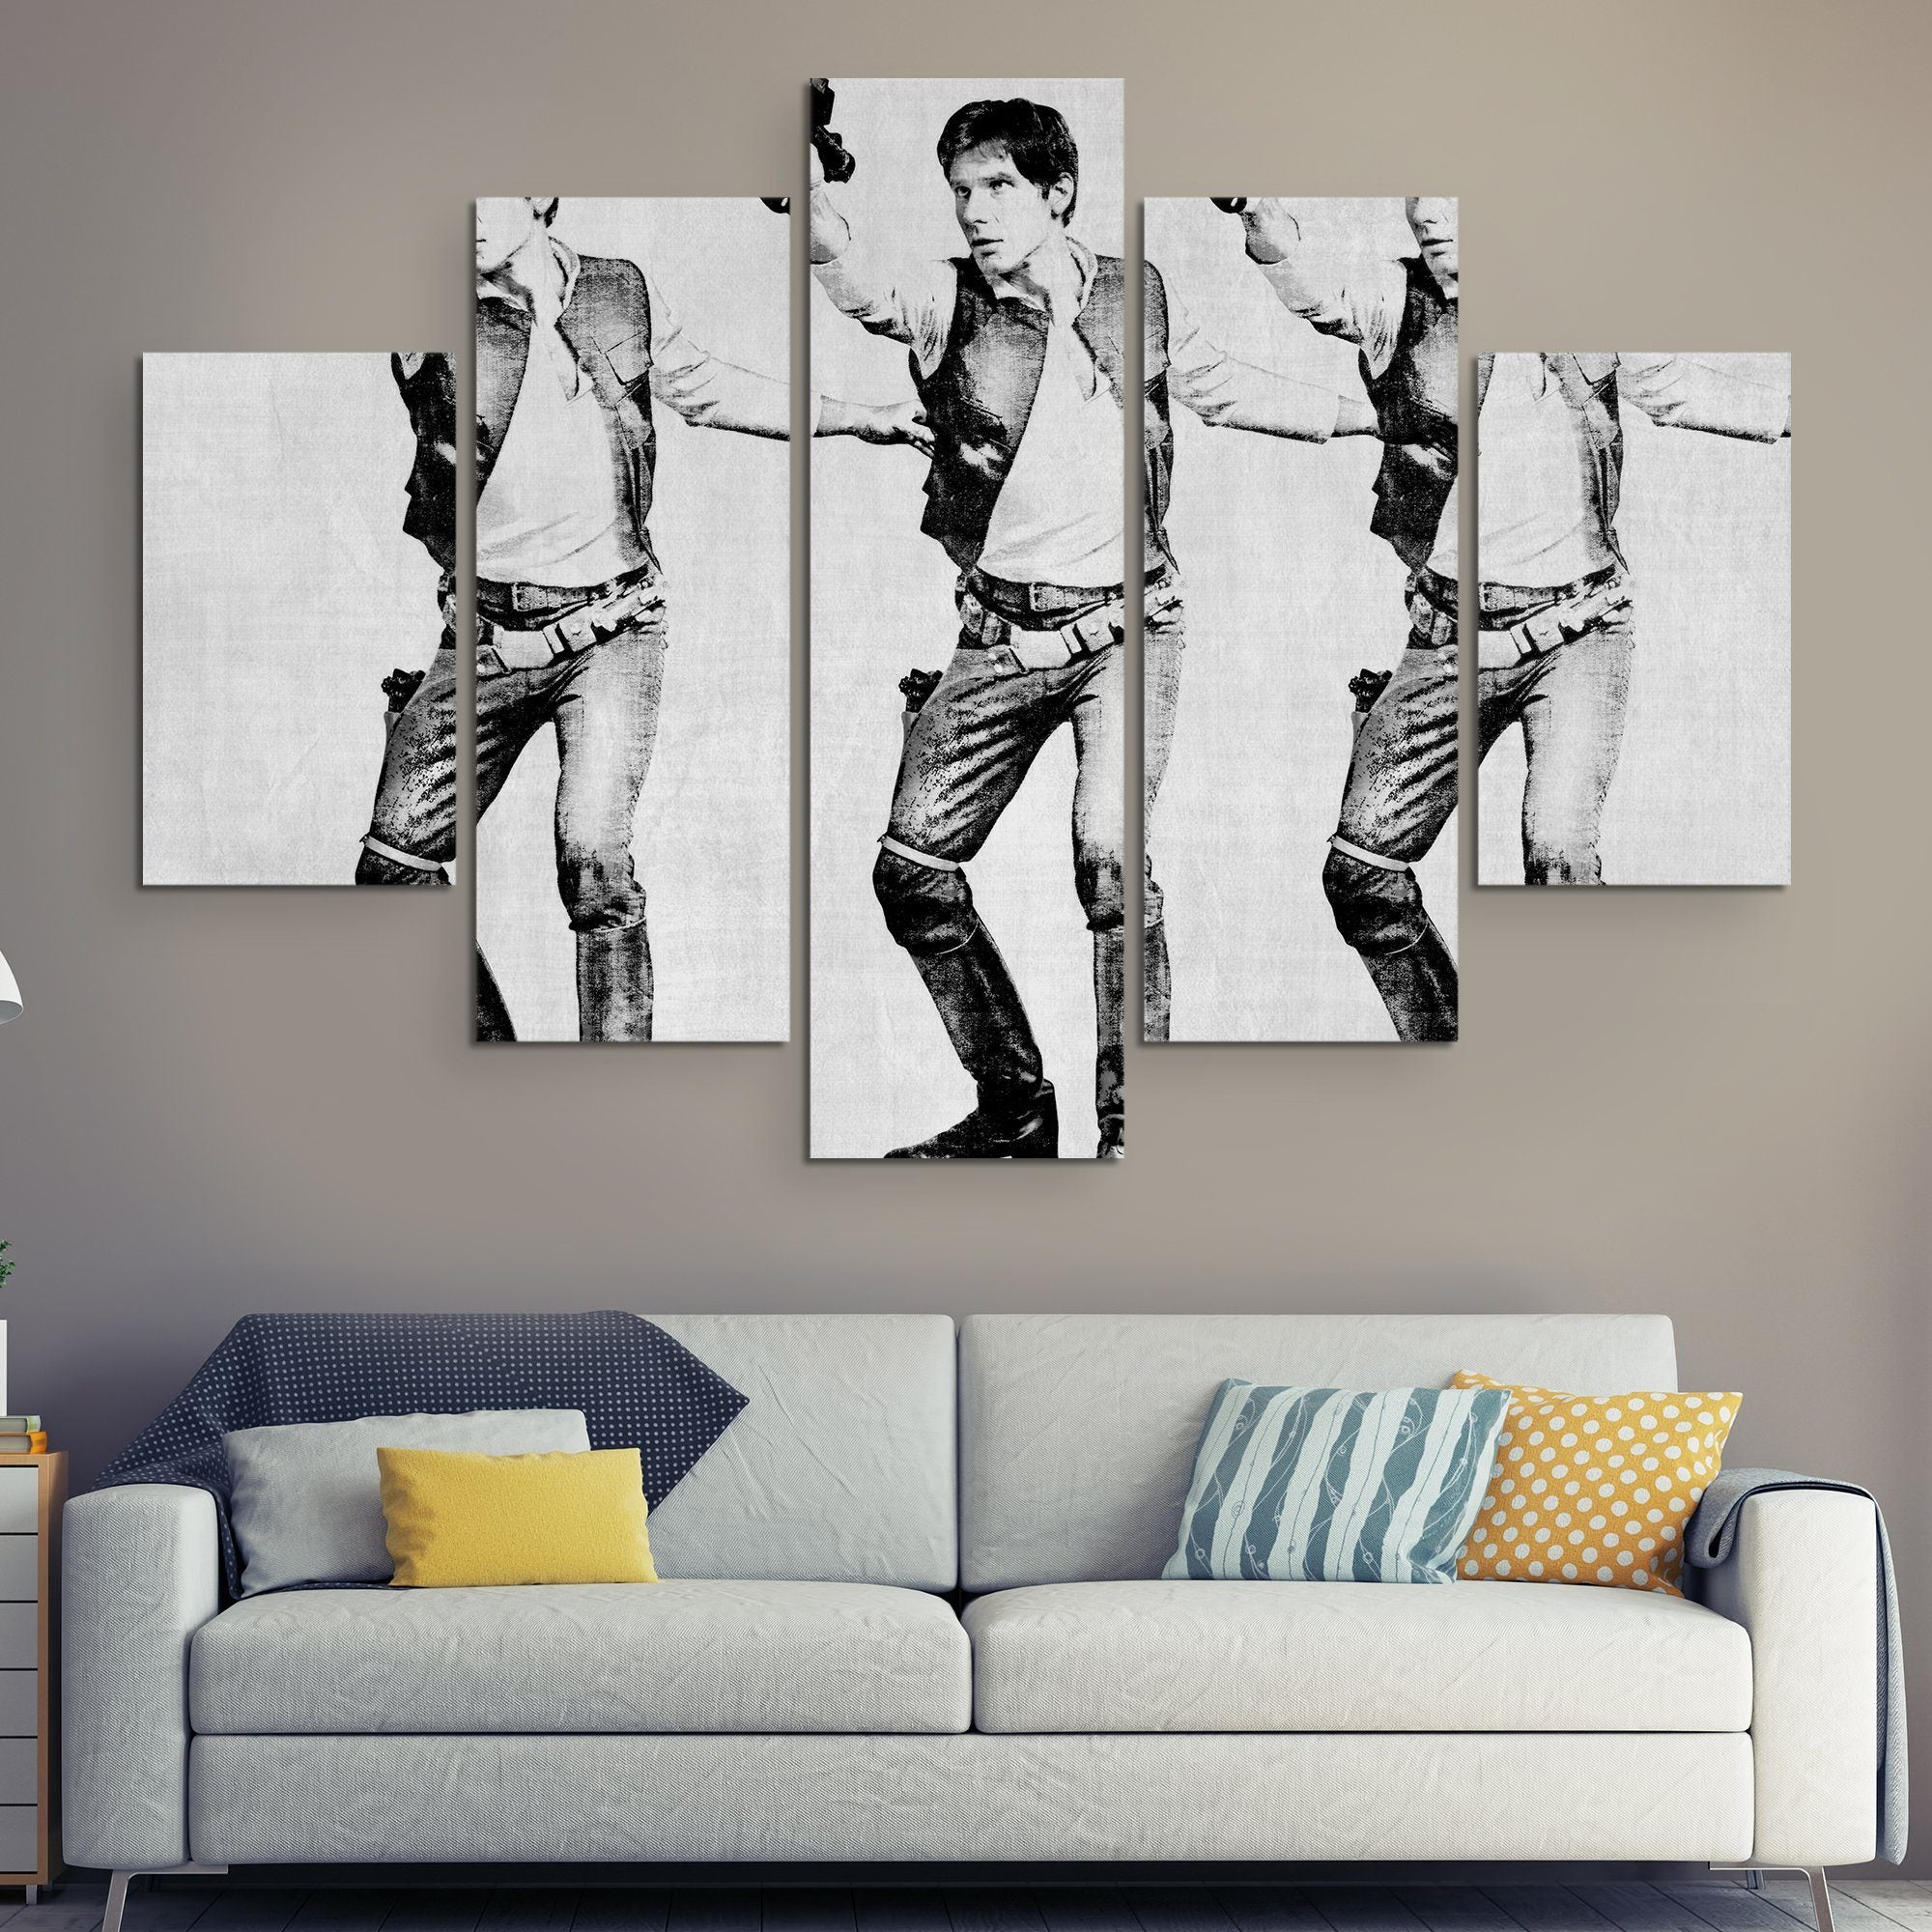 5 piece han solo wall art